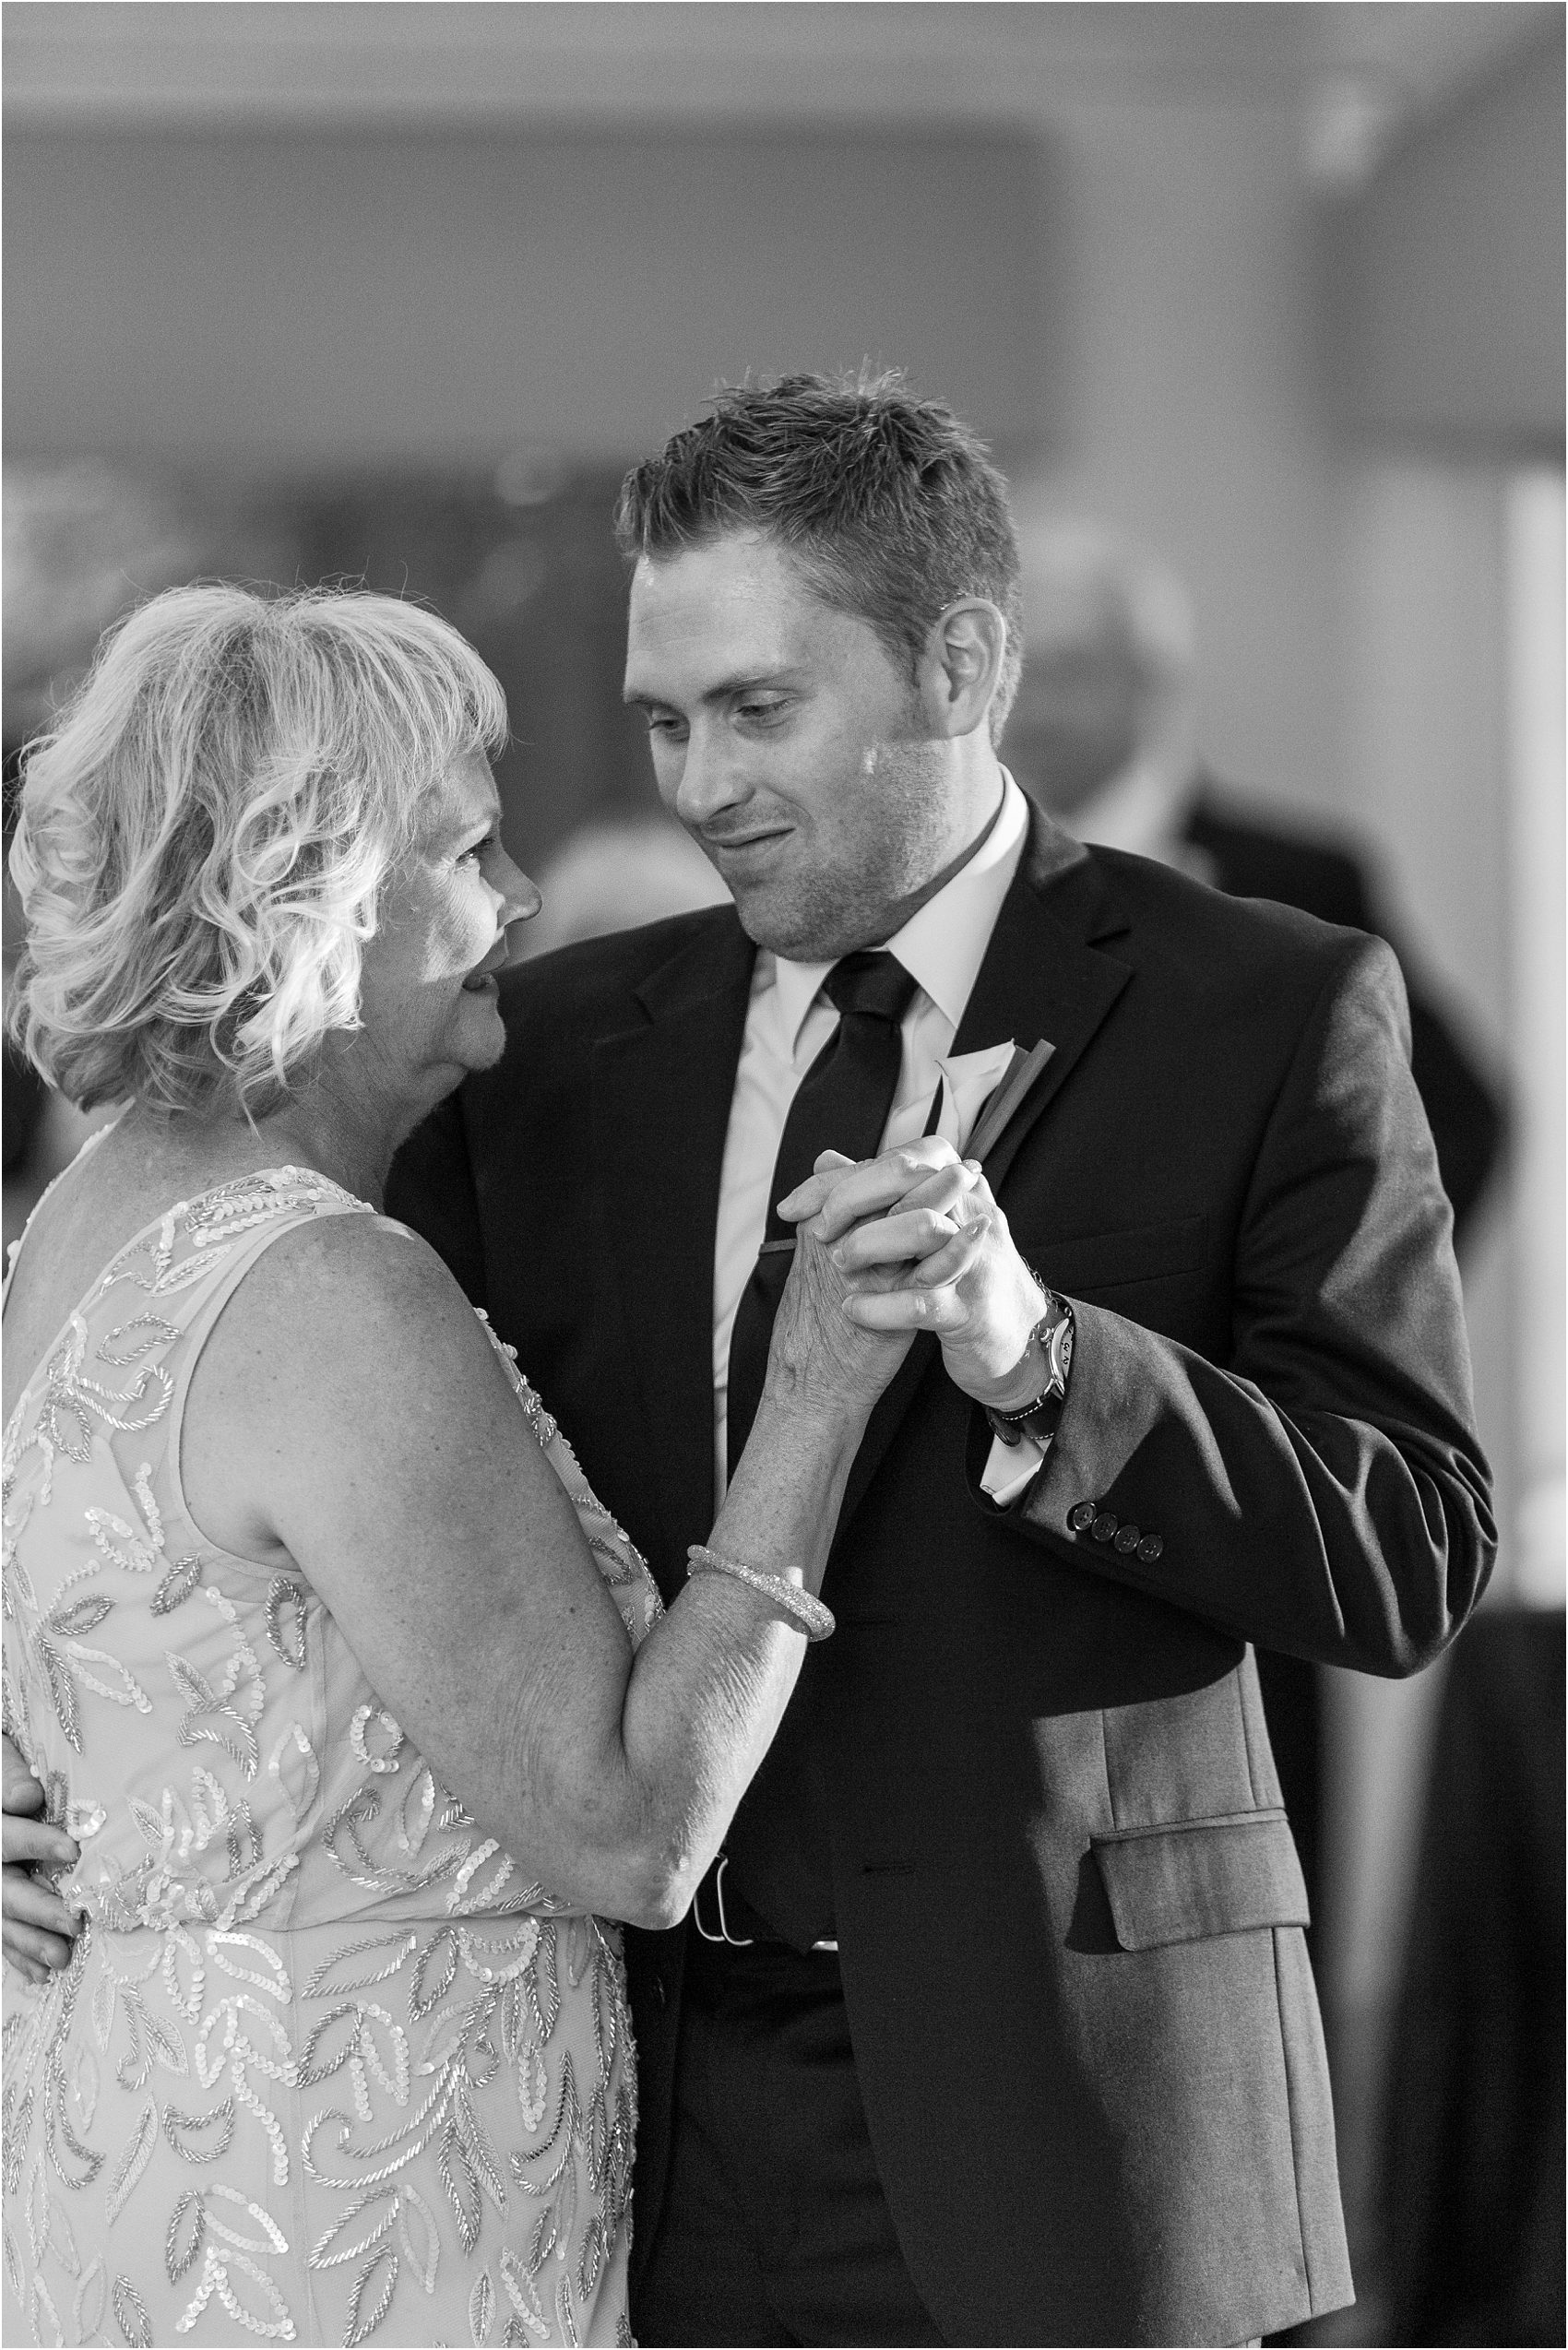 classic-wedding-photos-at-great-oaks-country-club-in-rochester-hills-mi-by-courtney-carolyn-photography_0110.jpg